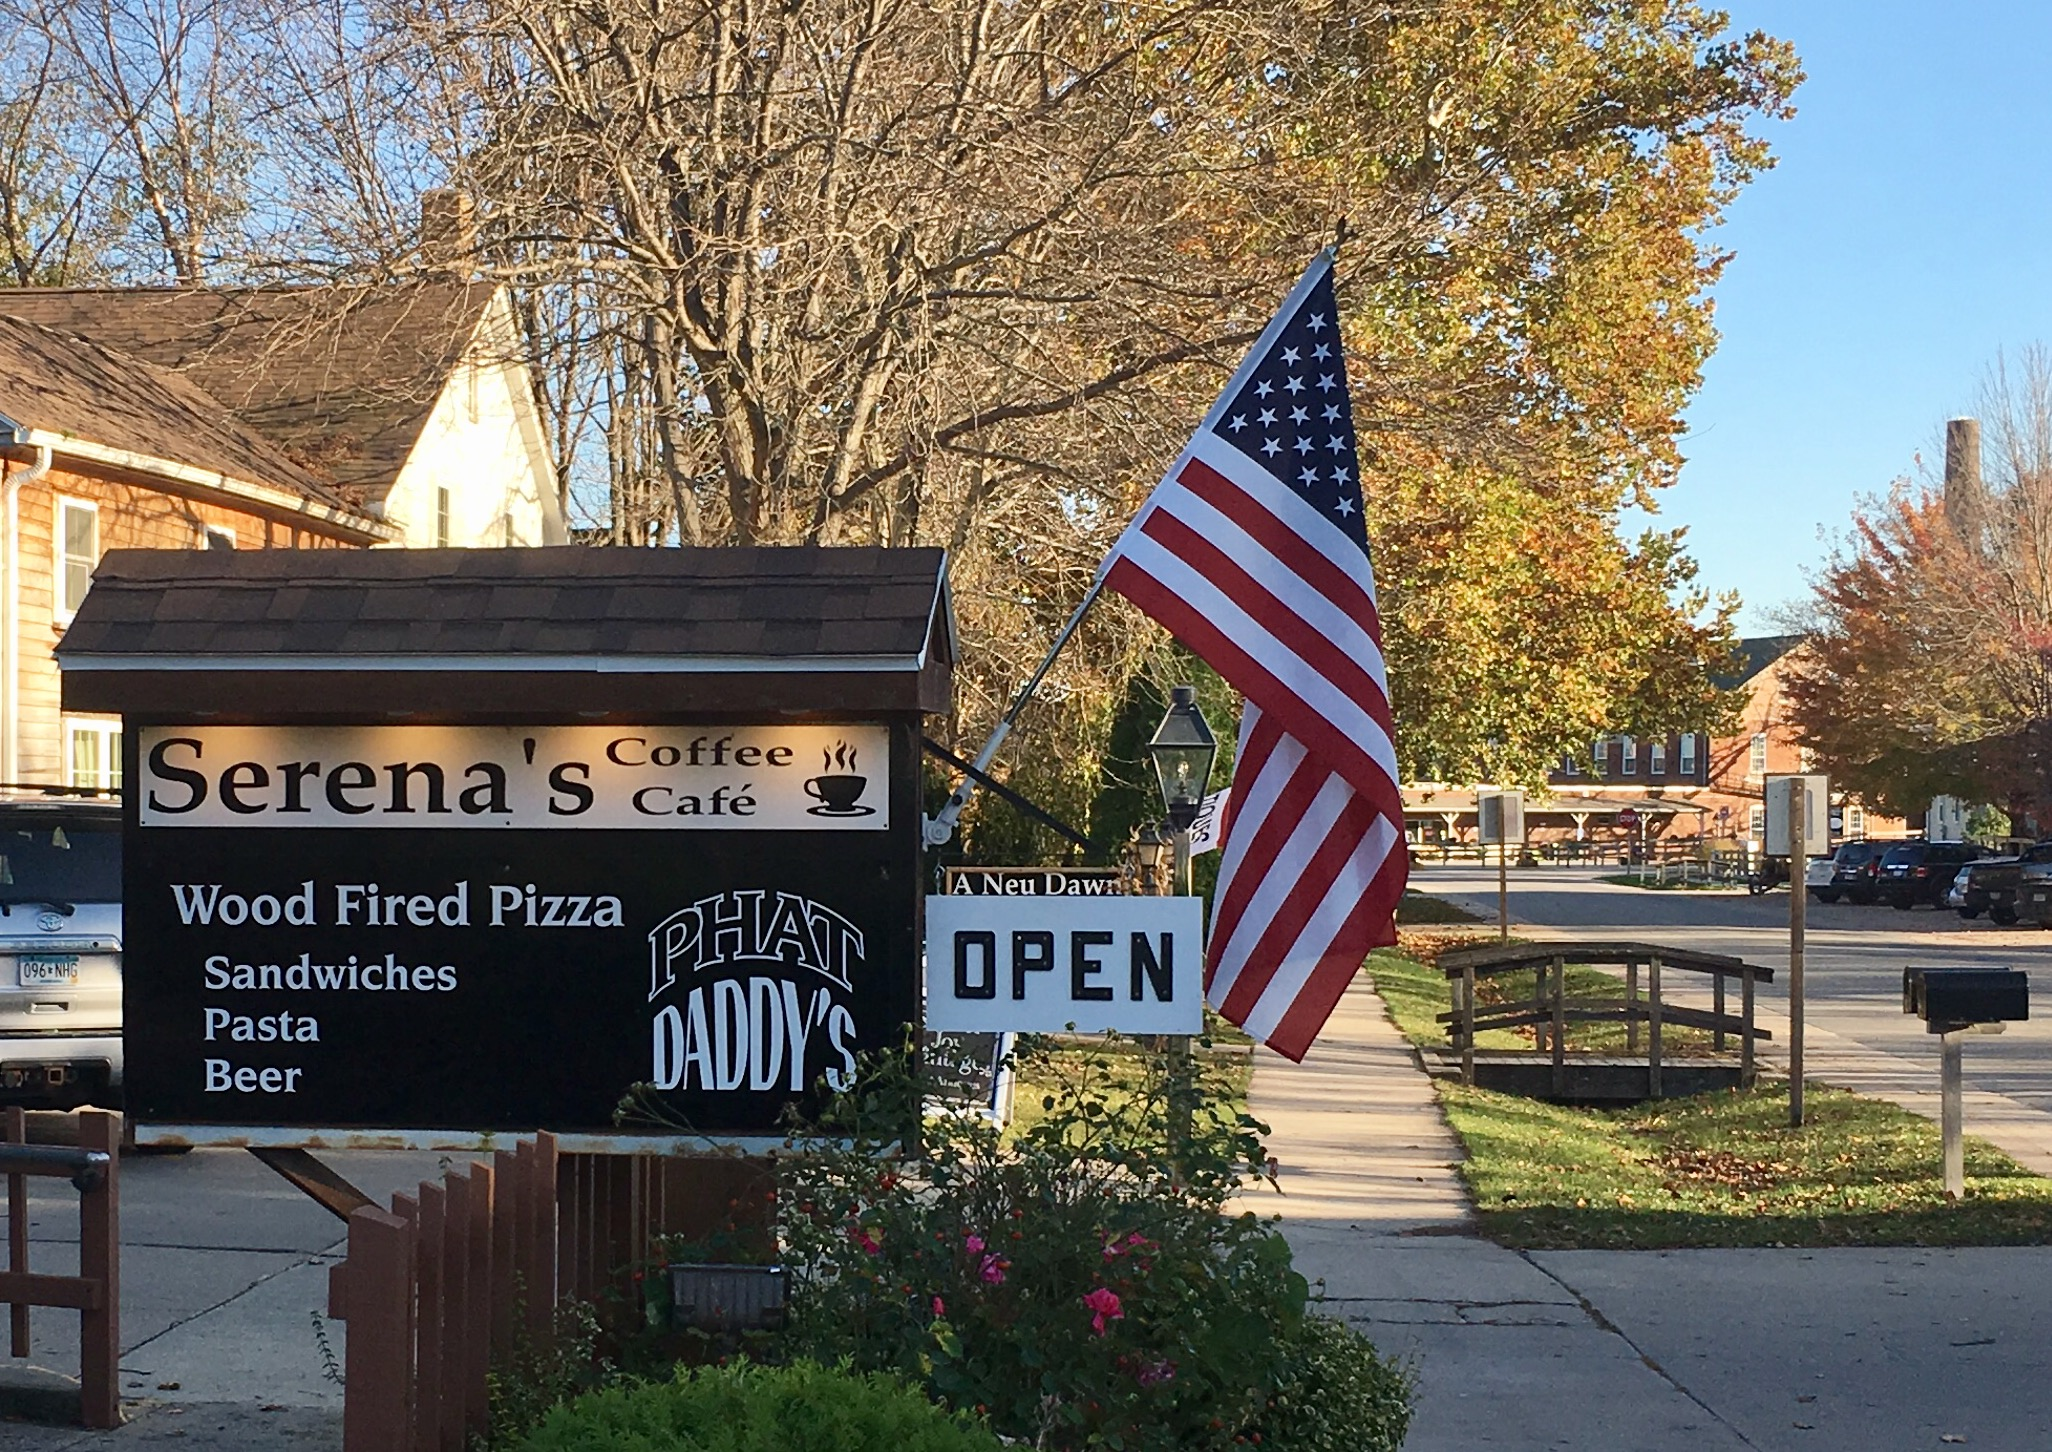 We are located in the former 'Brick Haus' restaurant just up the street from the Amana Woolen Mill & Amana Furniture Shop!